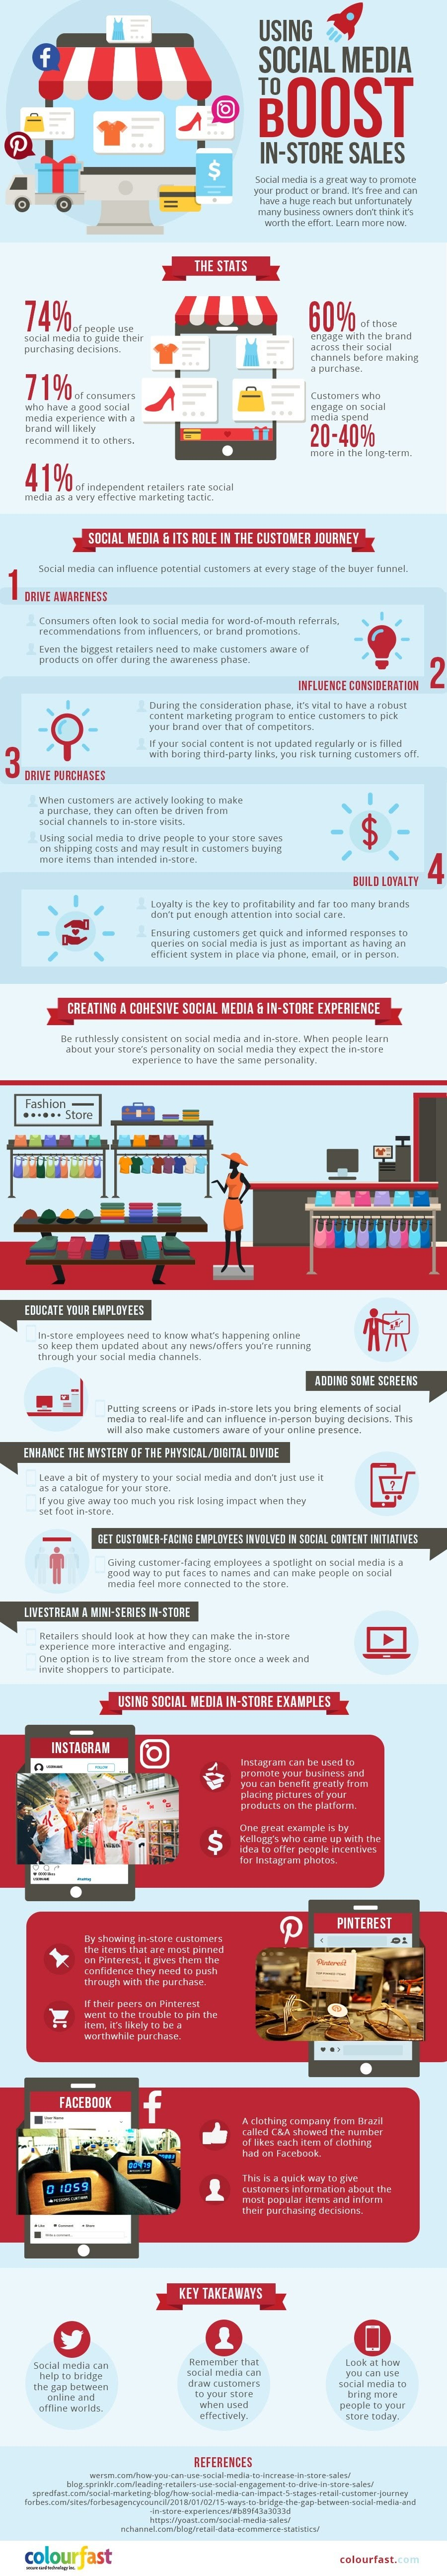 How to Leverage Social Media to Boost In-Store Sales [Infographic]